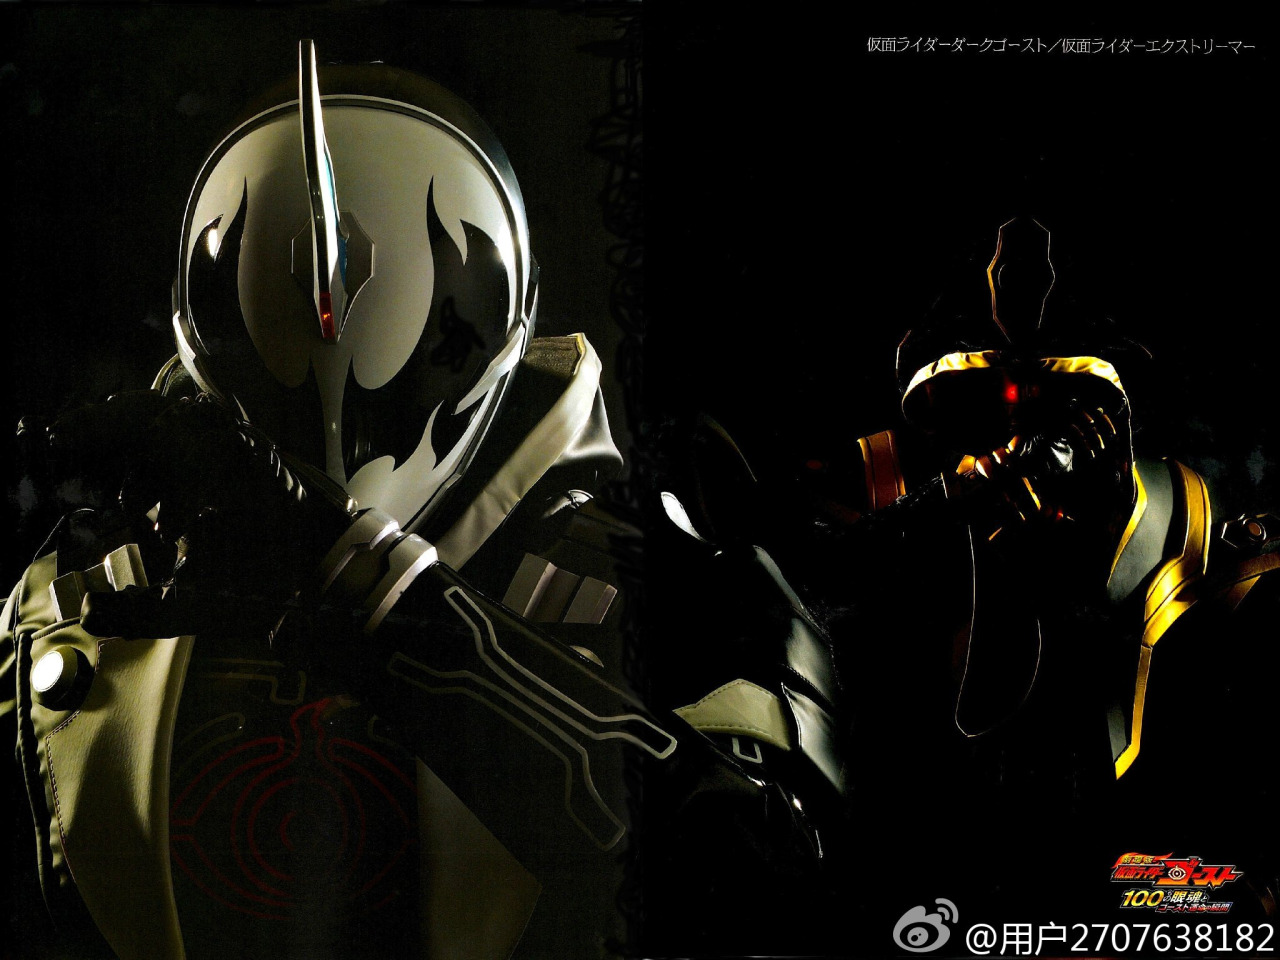 detail of heroes kamen rider dark ghost kamen rider extremer here s the second batch of scans from this month s detail of heroes featuring the movie exclusive villains kamen rider dark ghost along his napoleon